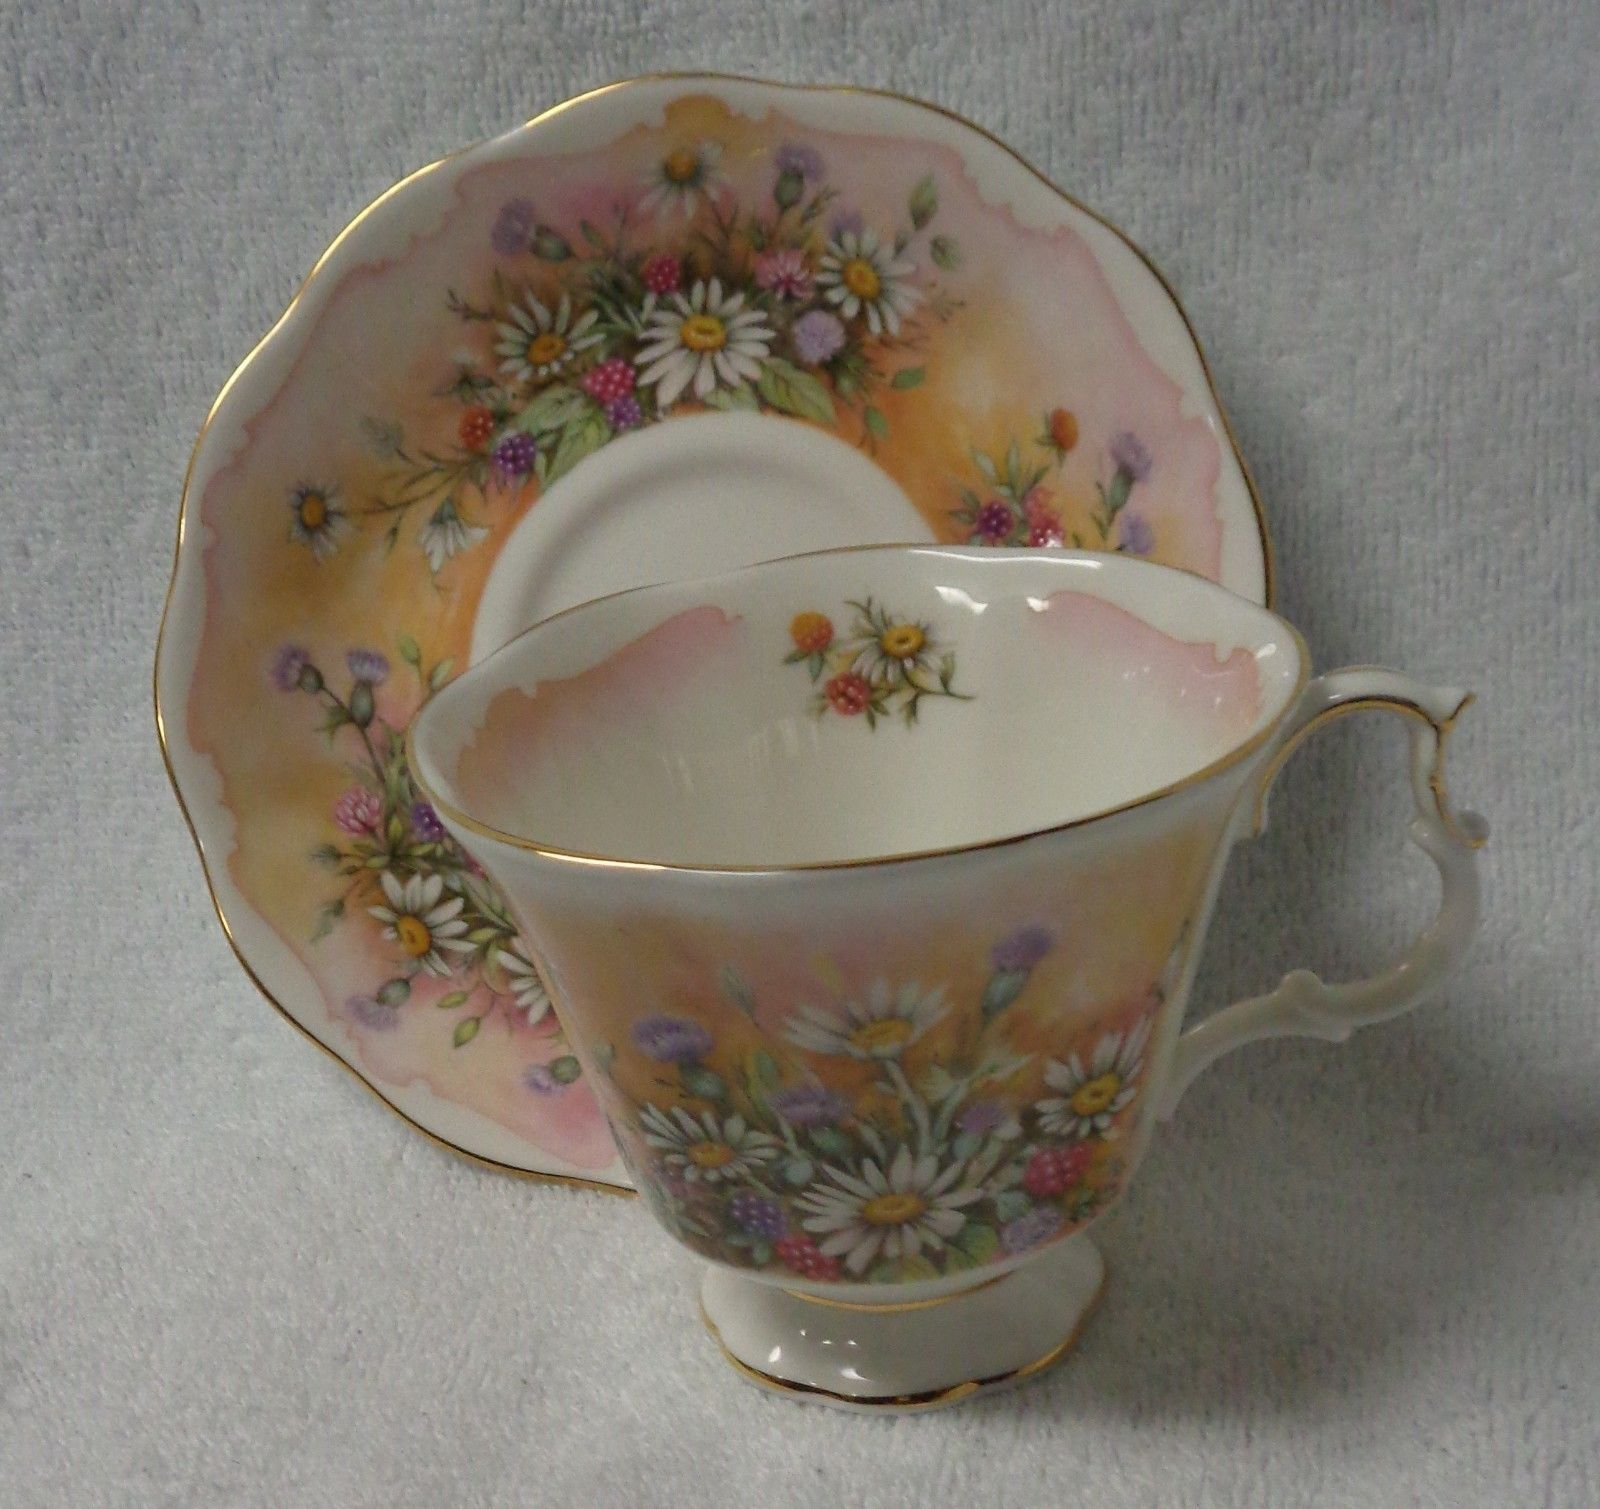 Royal Albert Shakespeare\u0027s Flowers Russet Mantle Cup and Saucer   Pottery \u0026 Glass Pottery \u0026 & Royal Albert Shakespeare\u0027s Flowers Russet Mantle Cup and Saucer ...